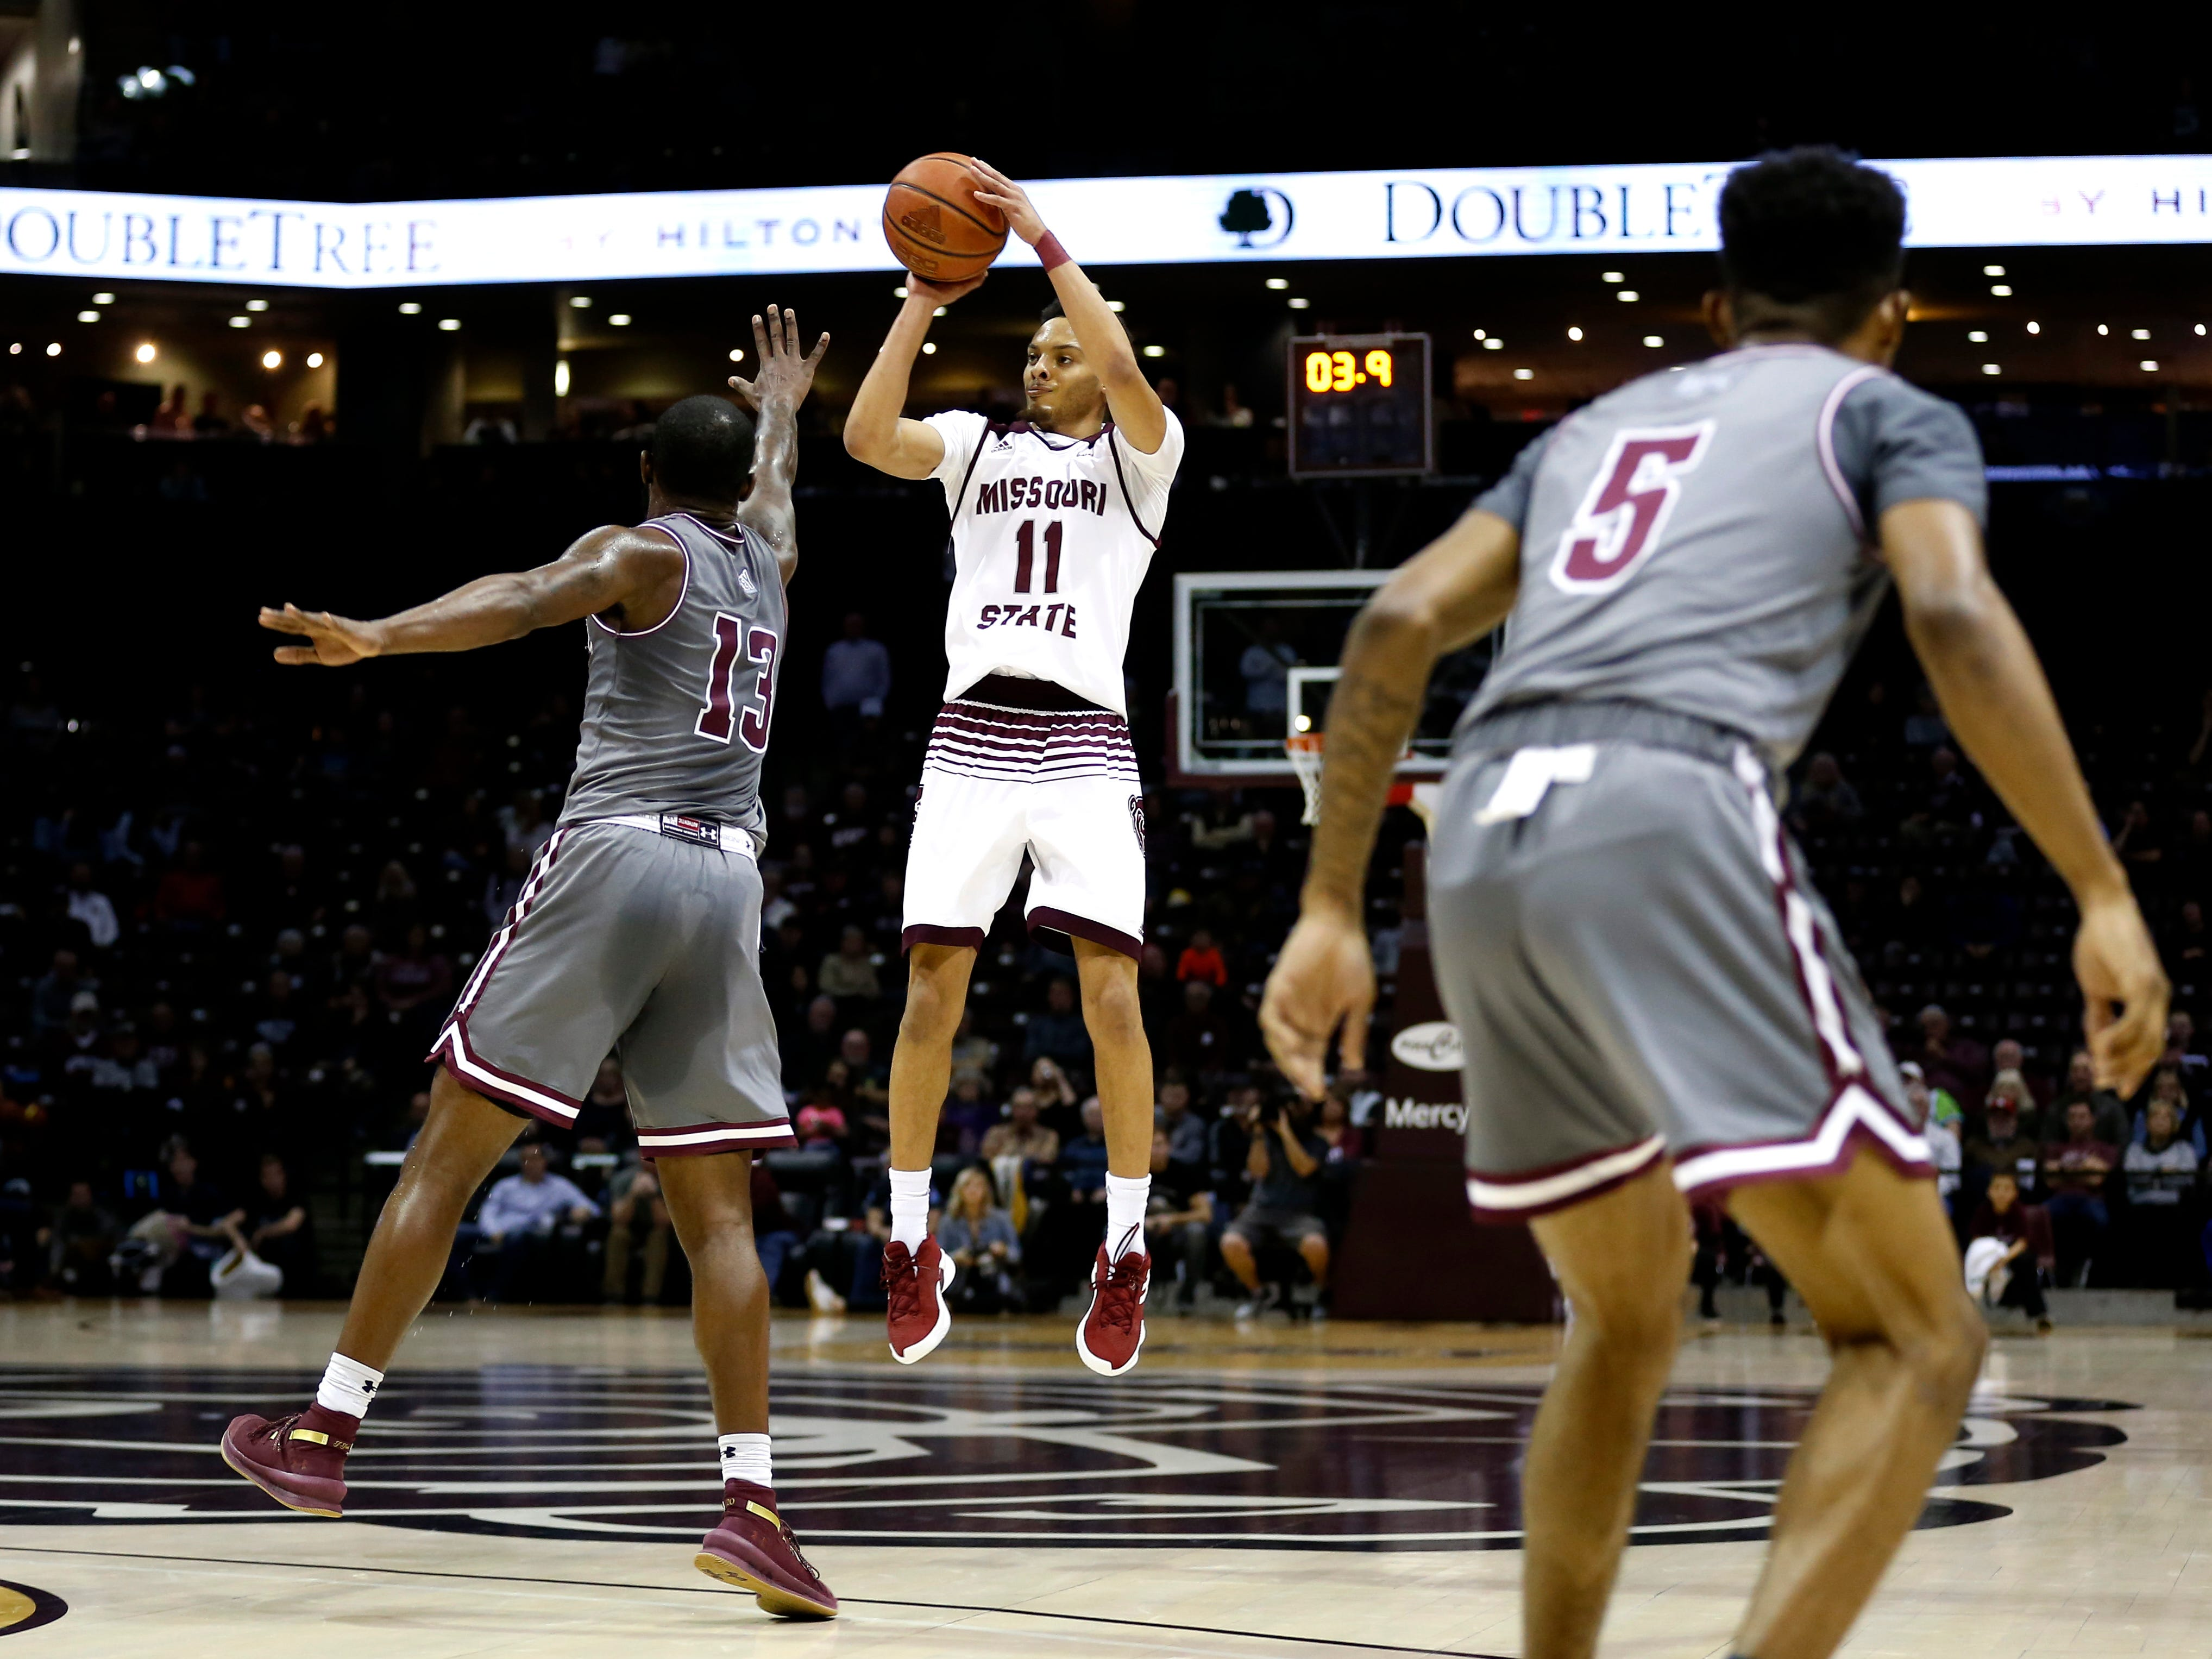 Missouri State's Jarred Dixon hits a three at the end of the first half giving the Bears a 36-23 lead over the Southern Illinois Salukis at JQH Arena on Wednesday, Feb. 6, 2019.